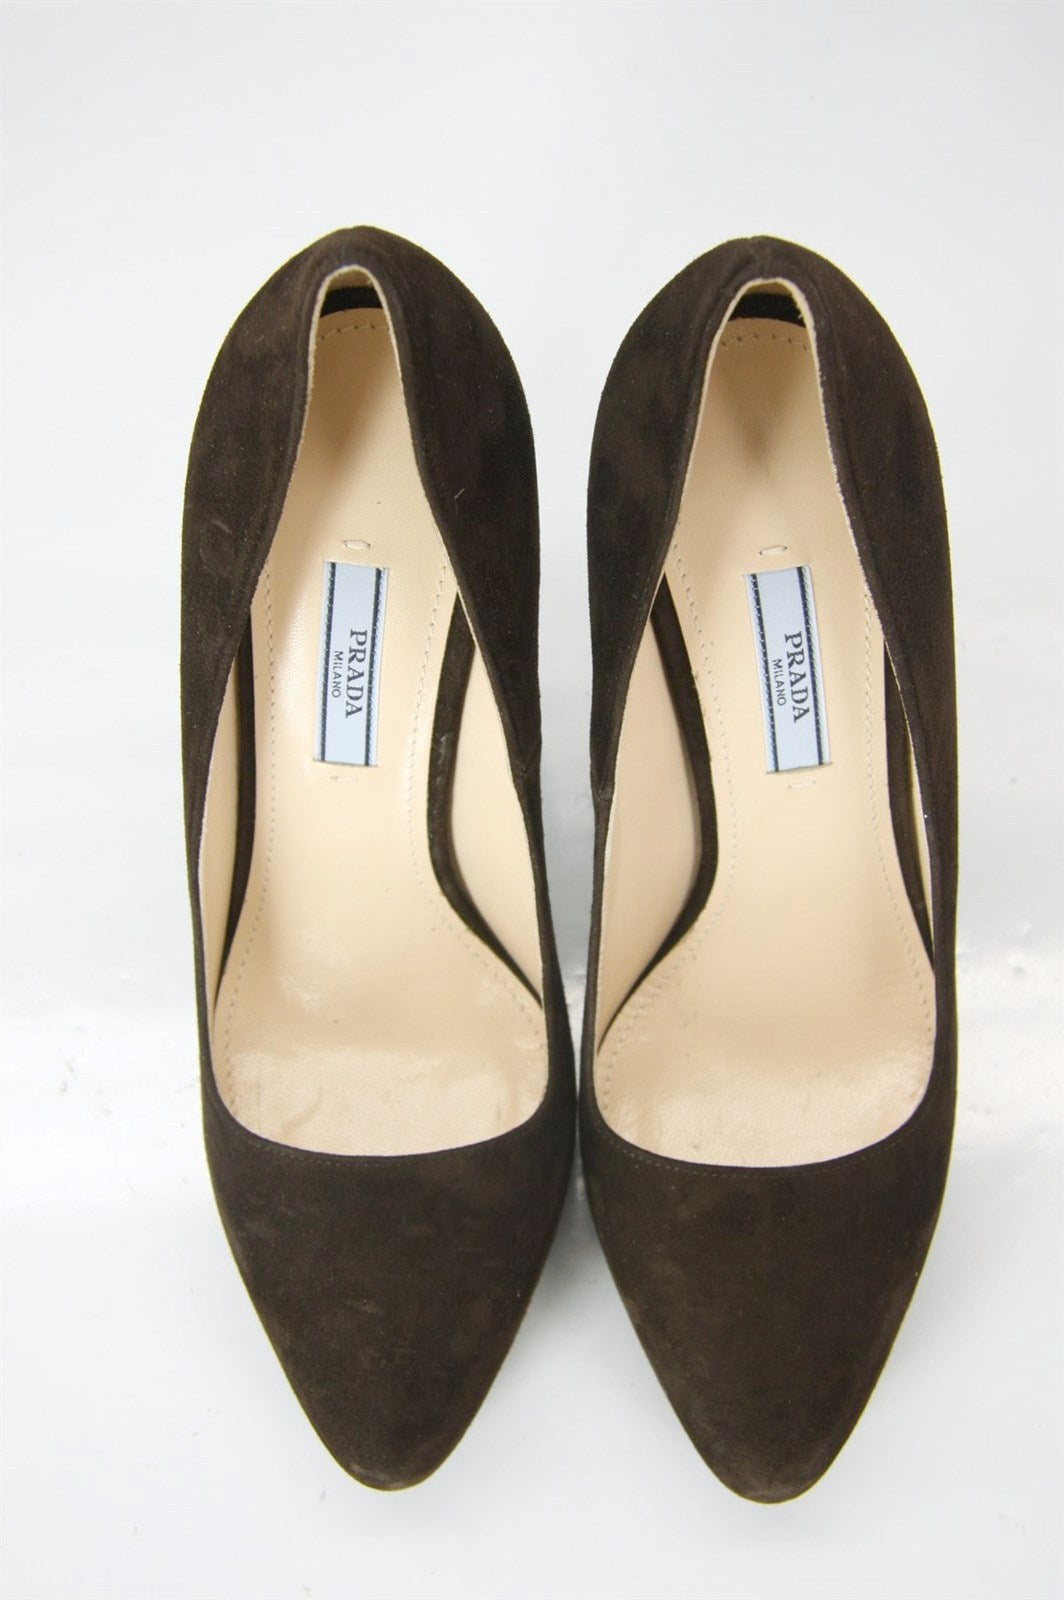 Prada Classic Brown Suede Leather Hidden Platform Heel Pump Size 39 Toe NIB $750